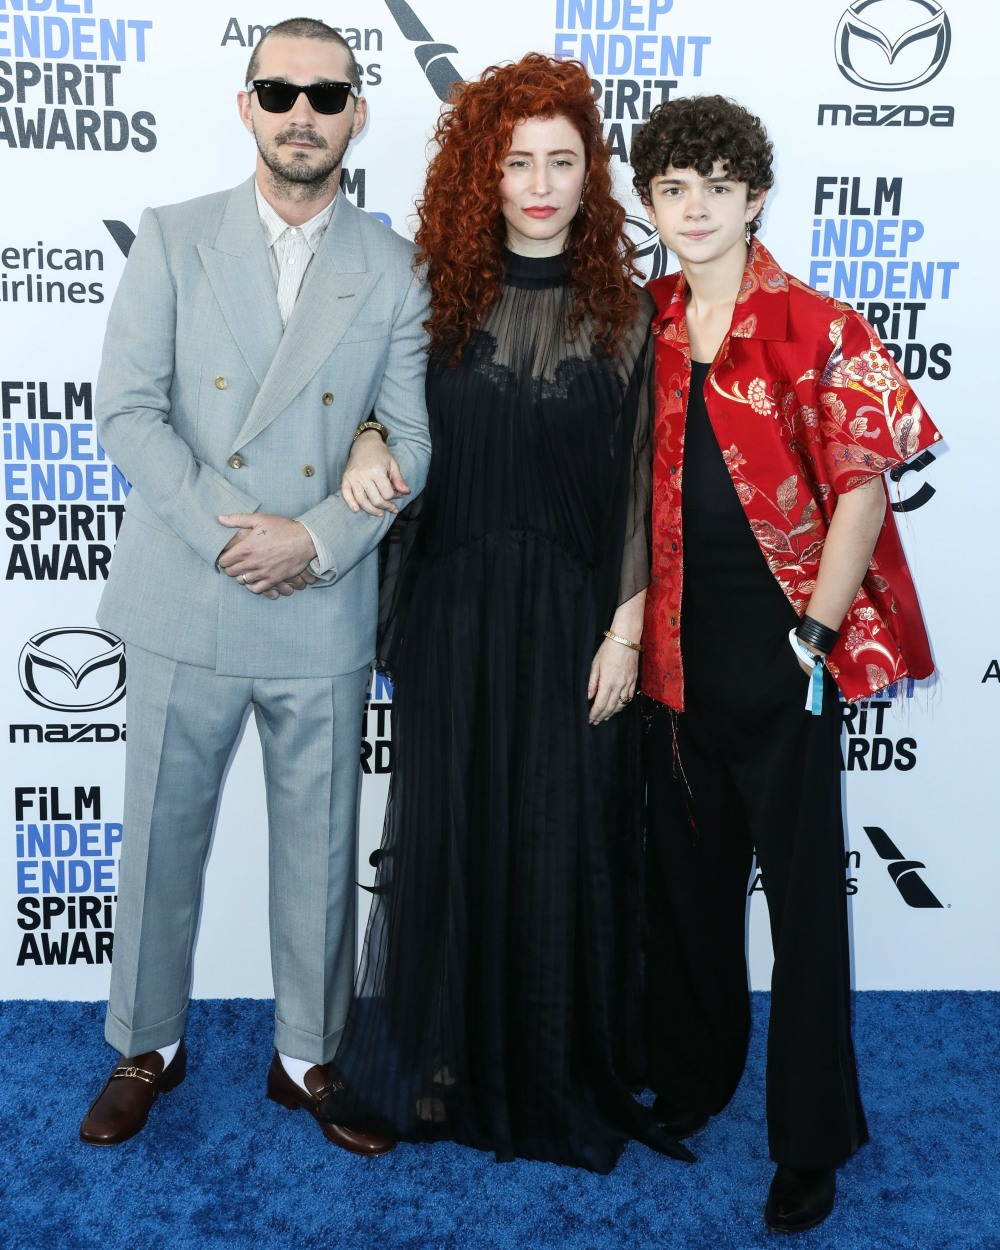 Shia LaBeouf, Alma Har'el and Noah Jupe arrive at the 2020 Film Independent Spirit Awards held at th...